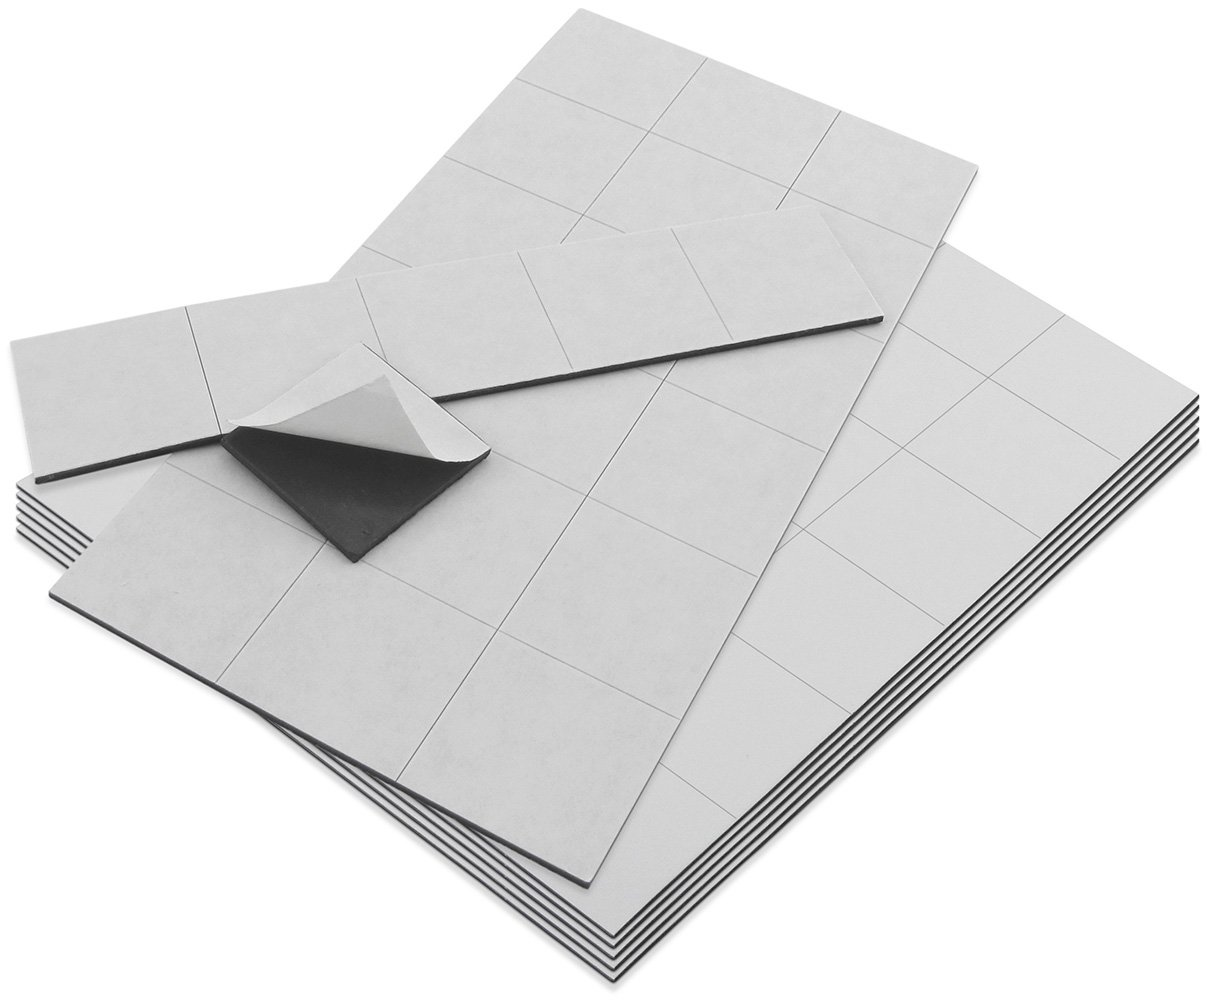 Master Magnetics ZGN60APAADCR4X6X6 Flexible High material Las Vegas Mall Squares with Magnet